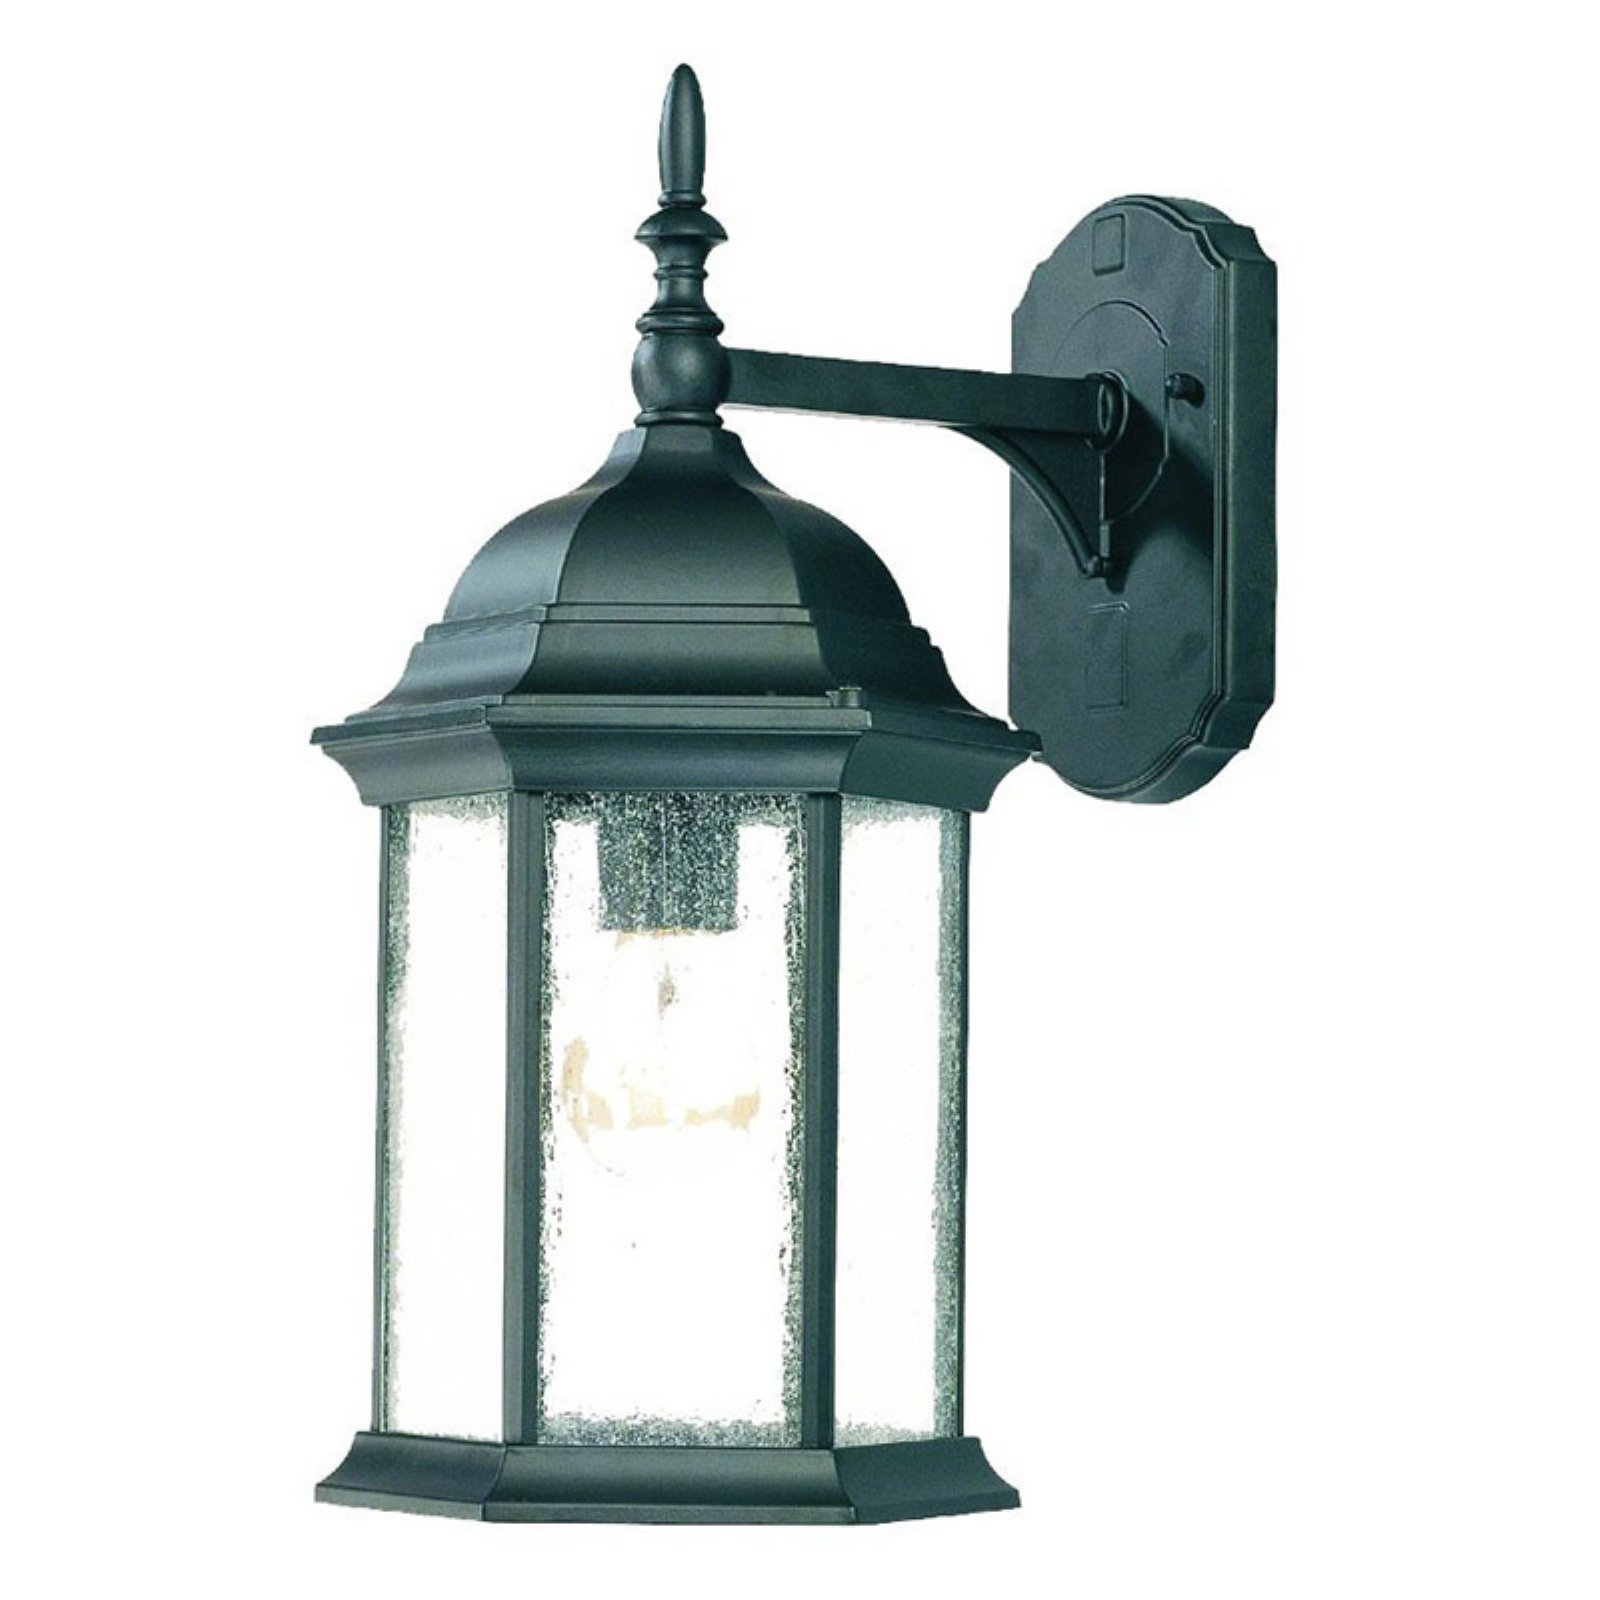 Acclaim Lighting Outdoor Wall Lights Acclaim Lighting Craftsman 1 Light Outdoor Wall Mount Light Fixture -  Walmart.com